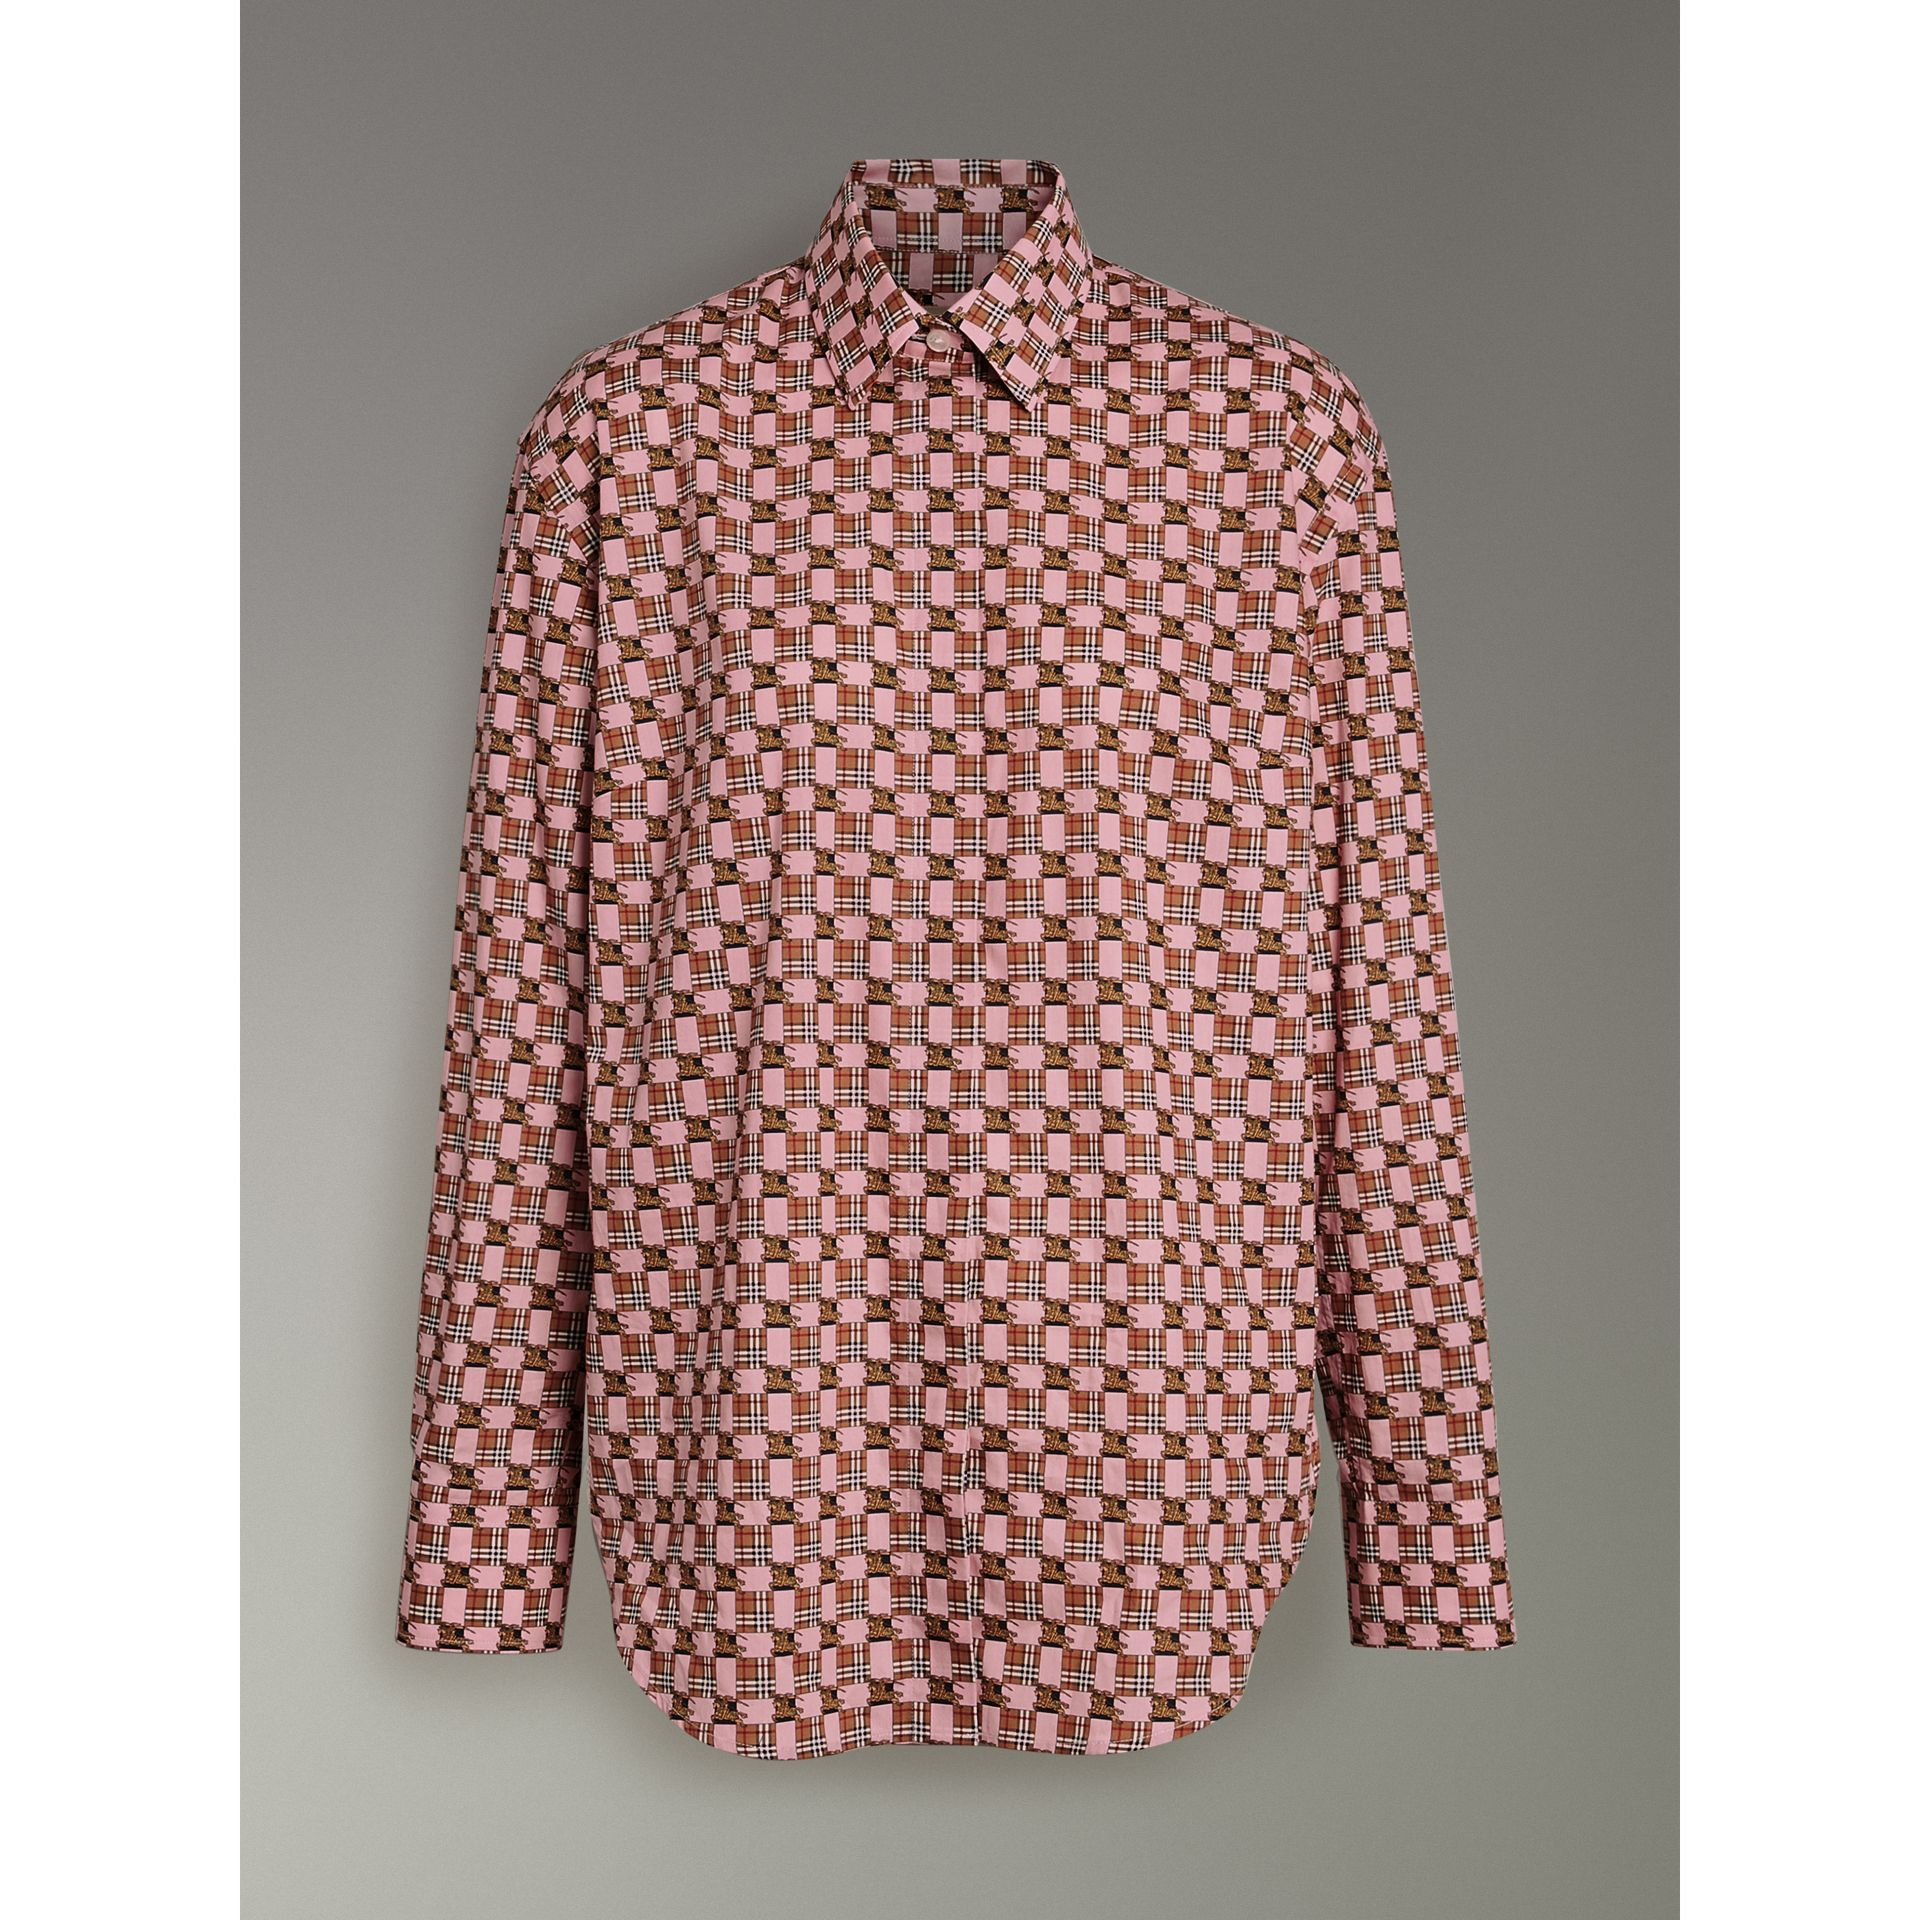 Tiled Archive Print Cotton Shirt in Pink - Women | Burberry United Kingdom - gallery image 3